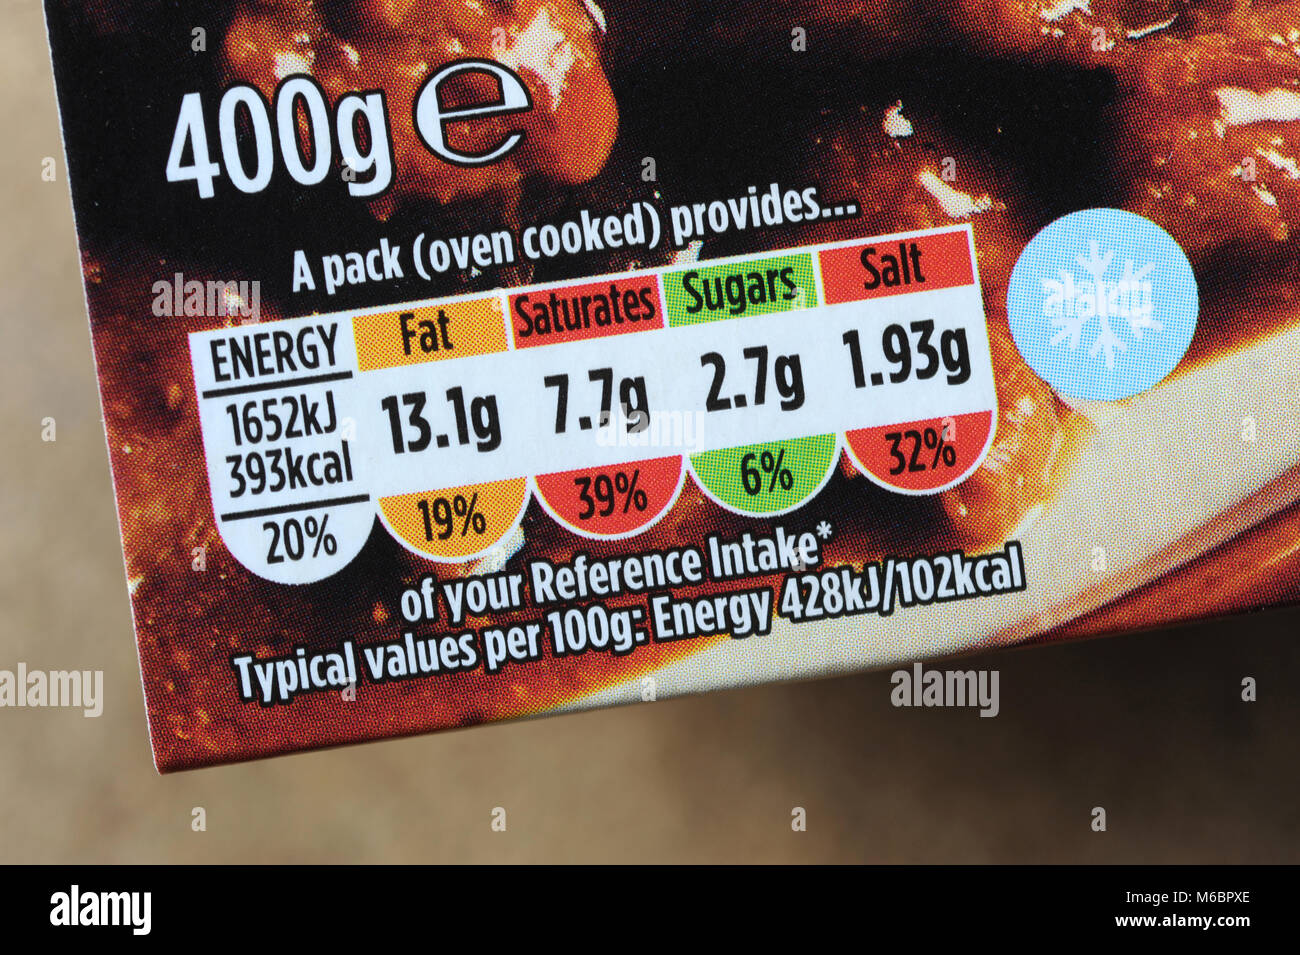 FOOD PACKAGE TRAFFIC LIGHT NUTRITIONAL INFORMATION LABEL RE HEALTH FITNESS OBESITY OVERWEIGHT FAT CALORIES ETC UK - Stock Image